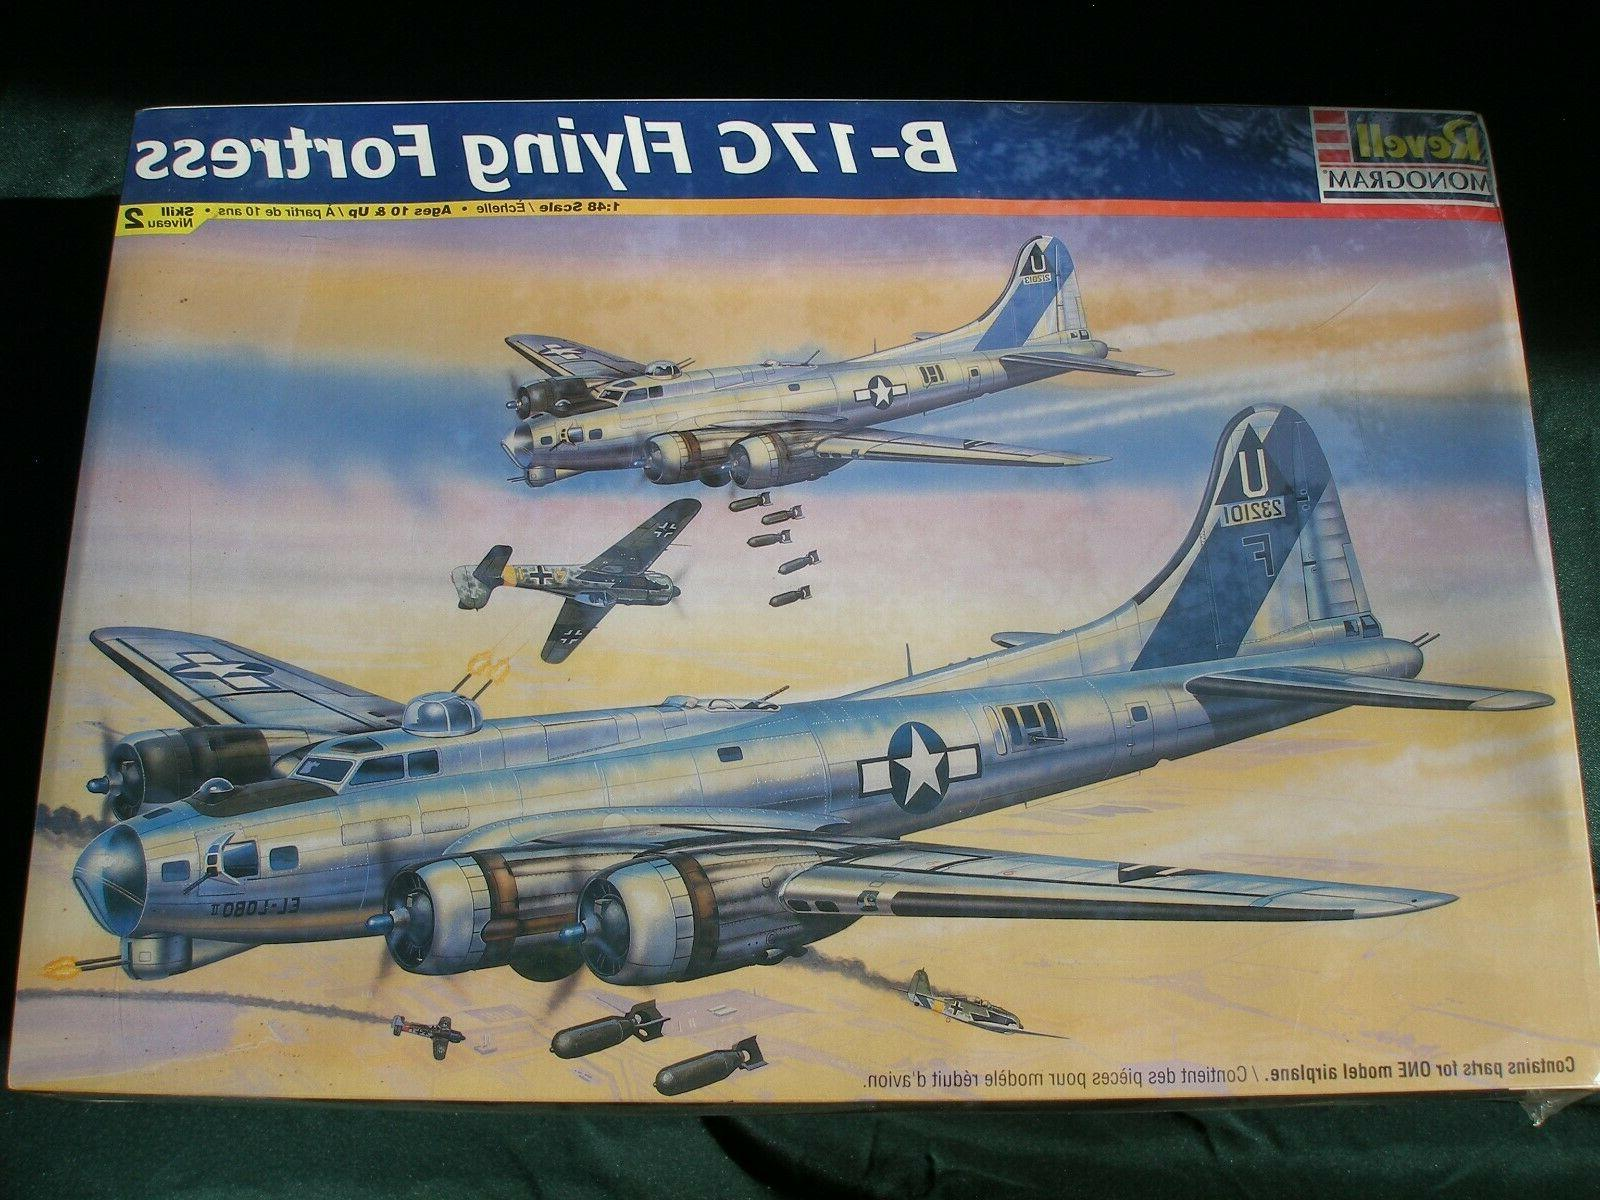 revell monogram 85 5600 b17g flying fortress